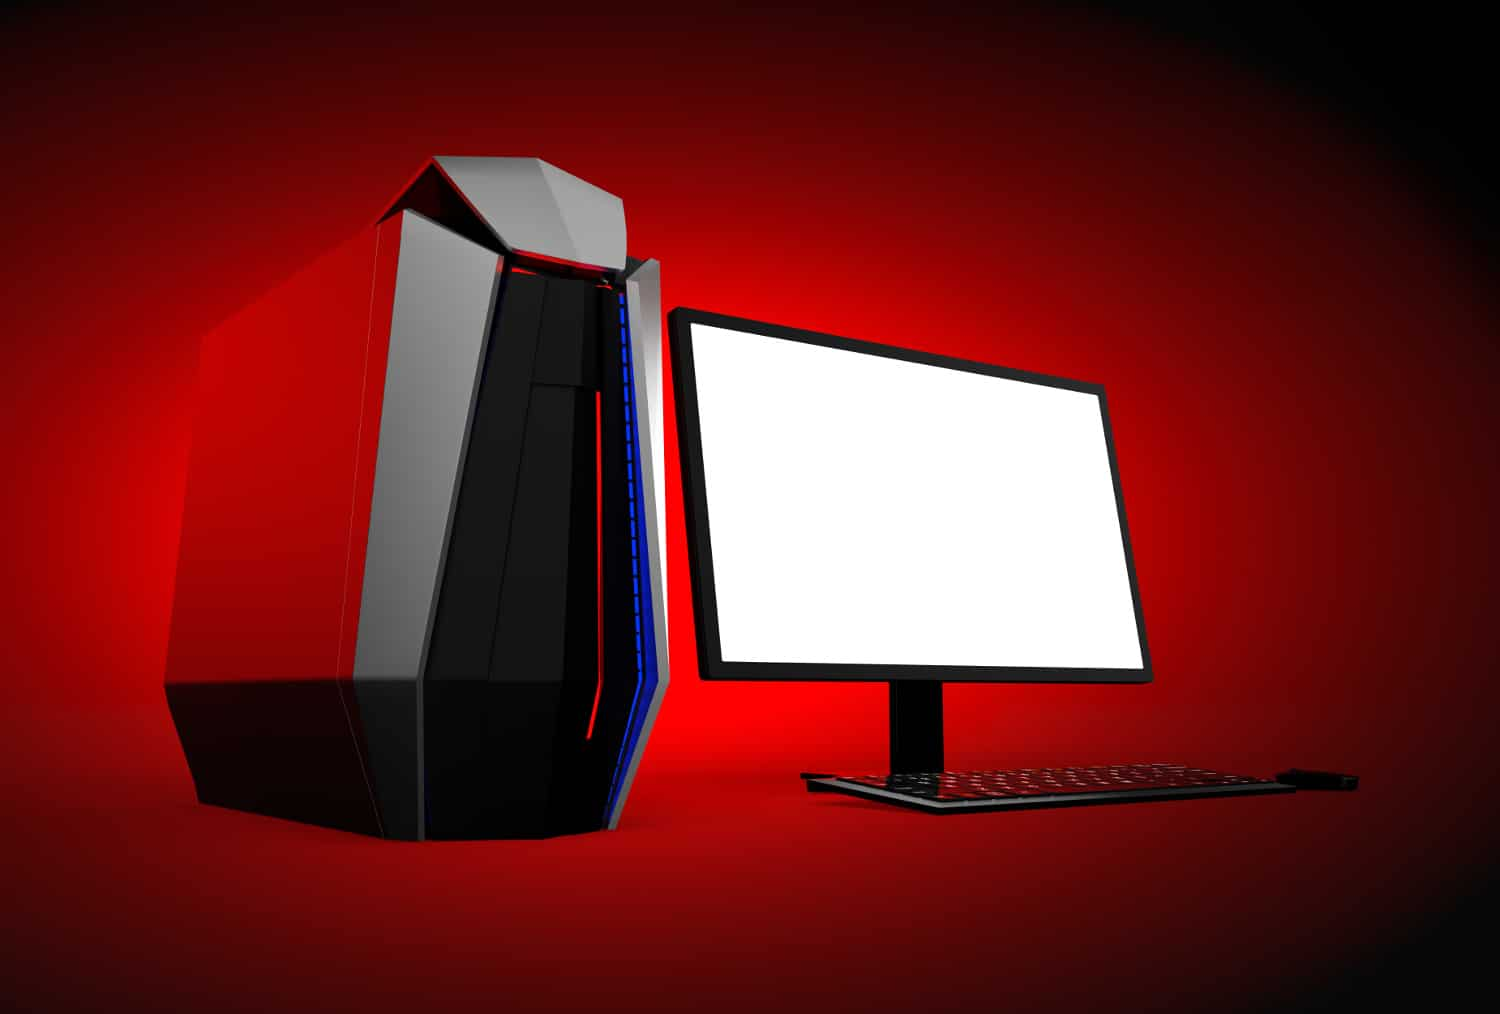 Best Gaming PC Build for 2020: Build A High-End Desktop ...